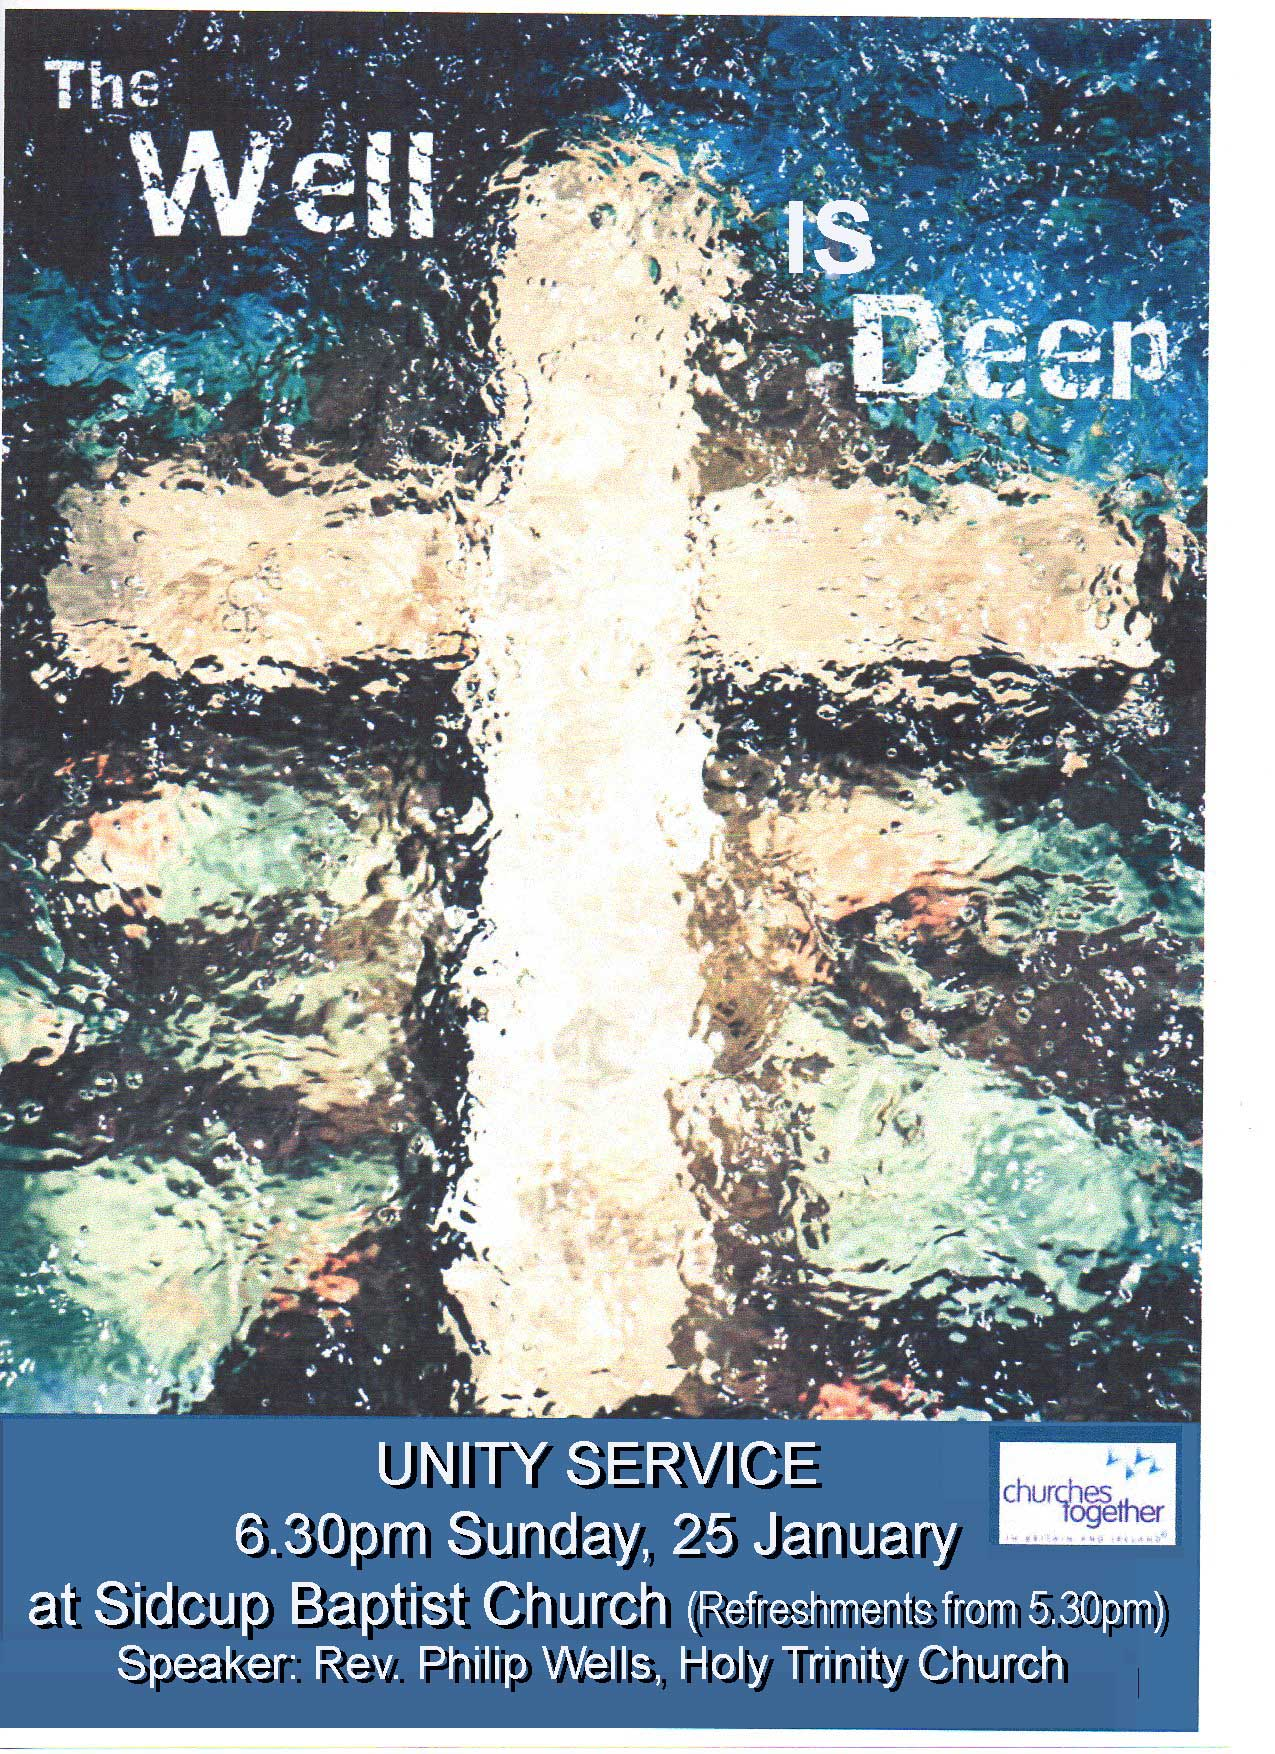 Unity Service2015, Sidcup Baptist Church